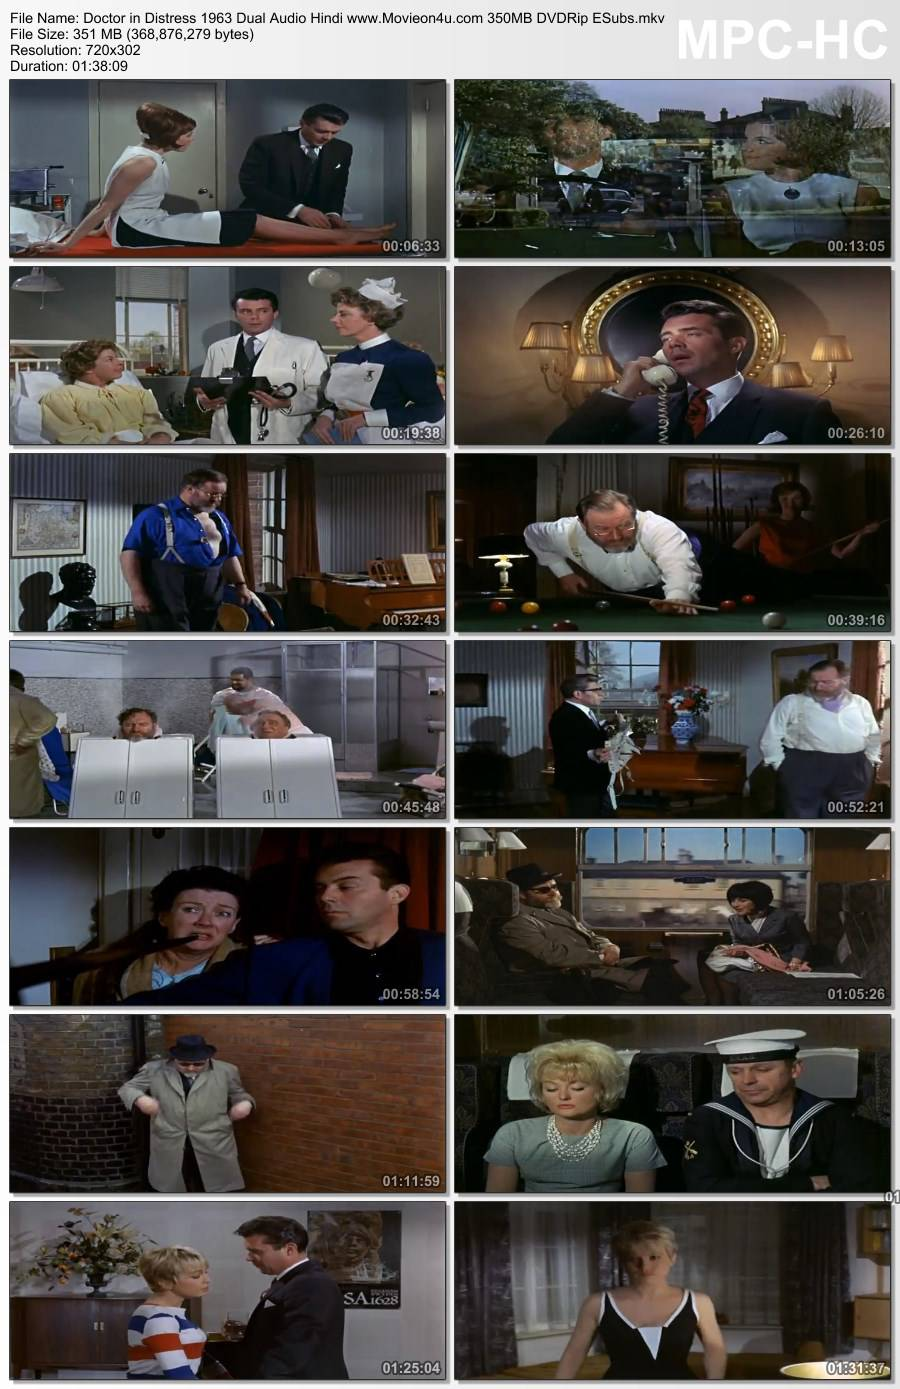 Doctor in Distress 1963 Dual Audio Hindi 350MB DVDRip ESubs 480p Download HD